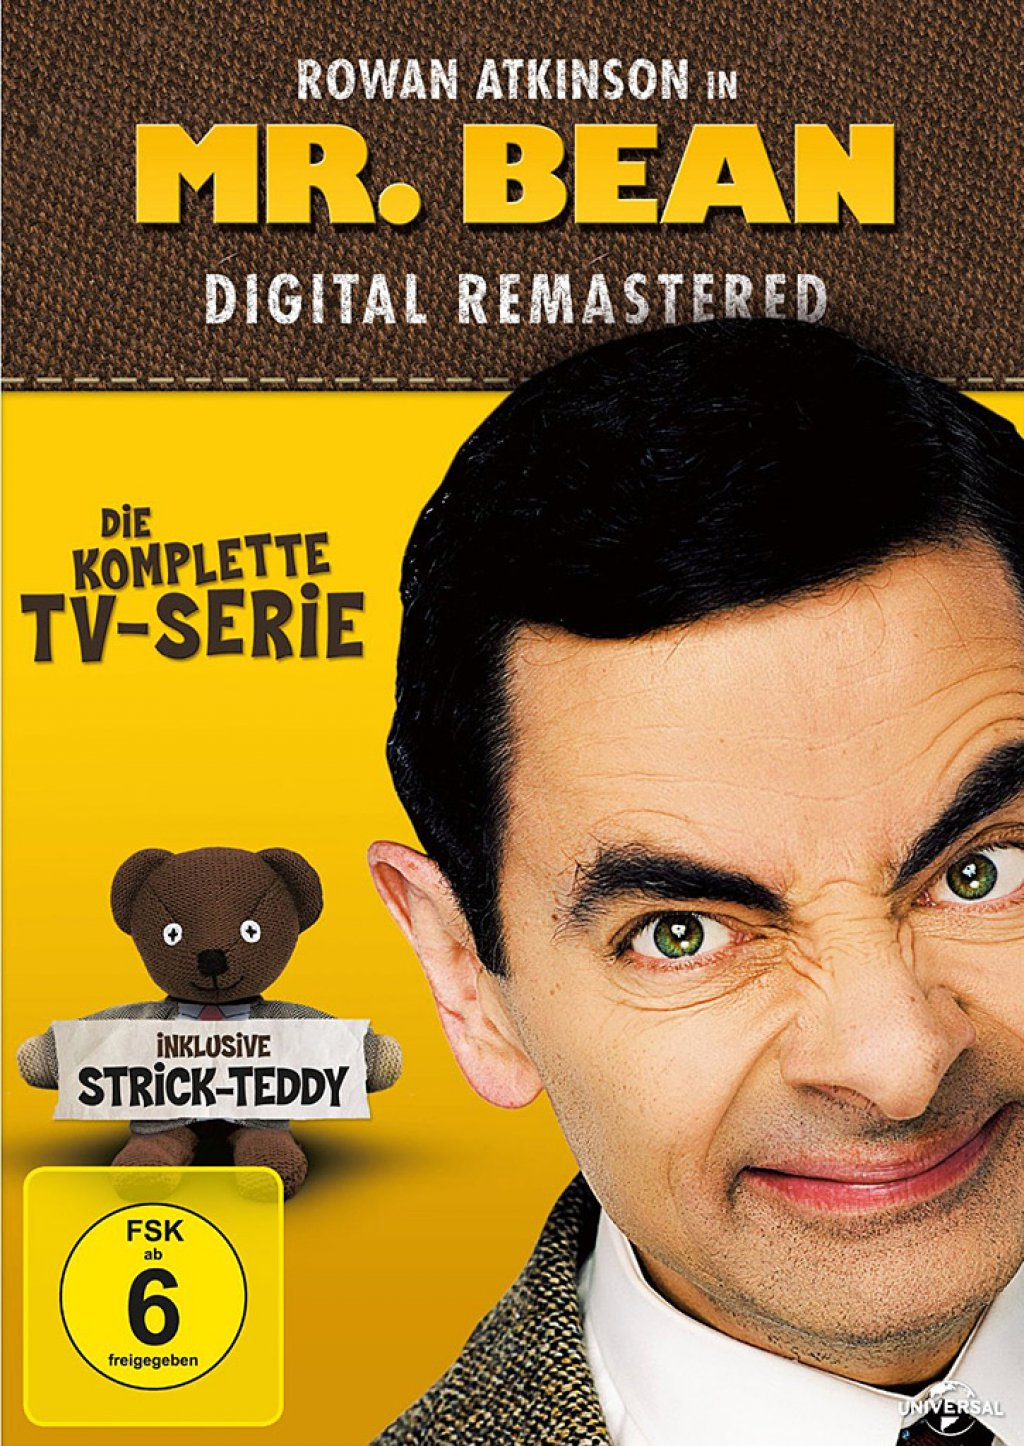 Mr. Bean - Die komplette TV-Serie - Digital Remastered / inkl. Strick-Teddy (DVD)